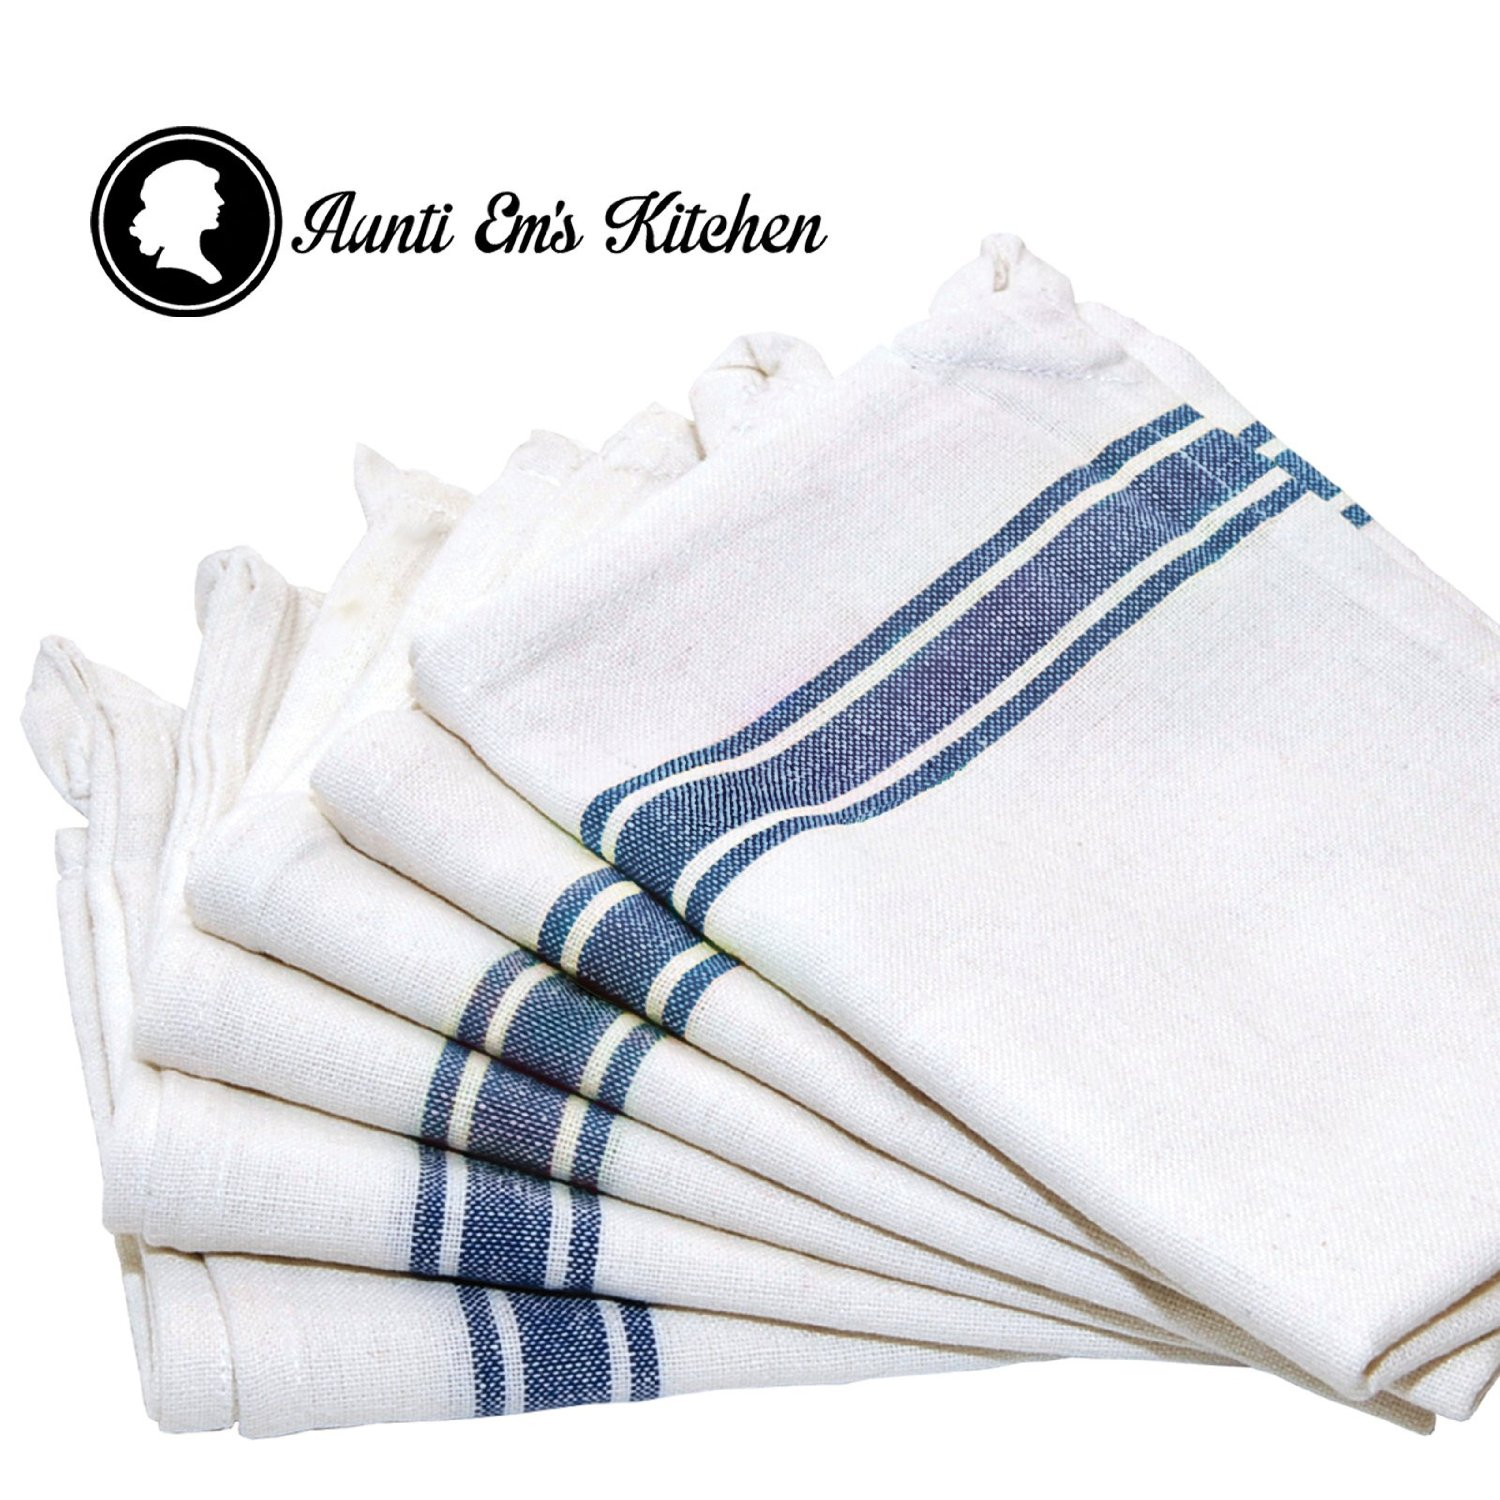 Blue and white kitchen towels - Amazon High Quality Kitchen Dish Towels 12 Pack For 19 42 Free Shipping With Prime